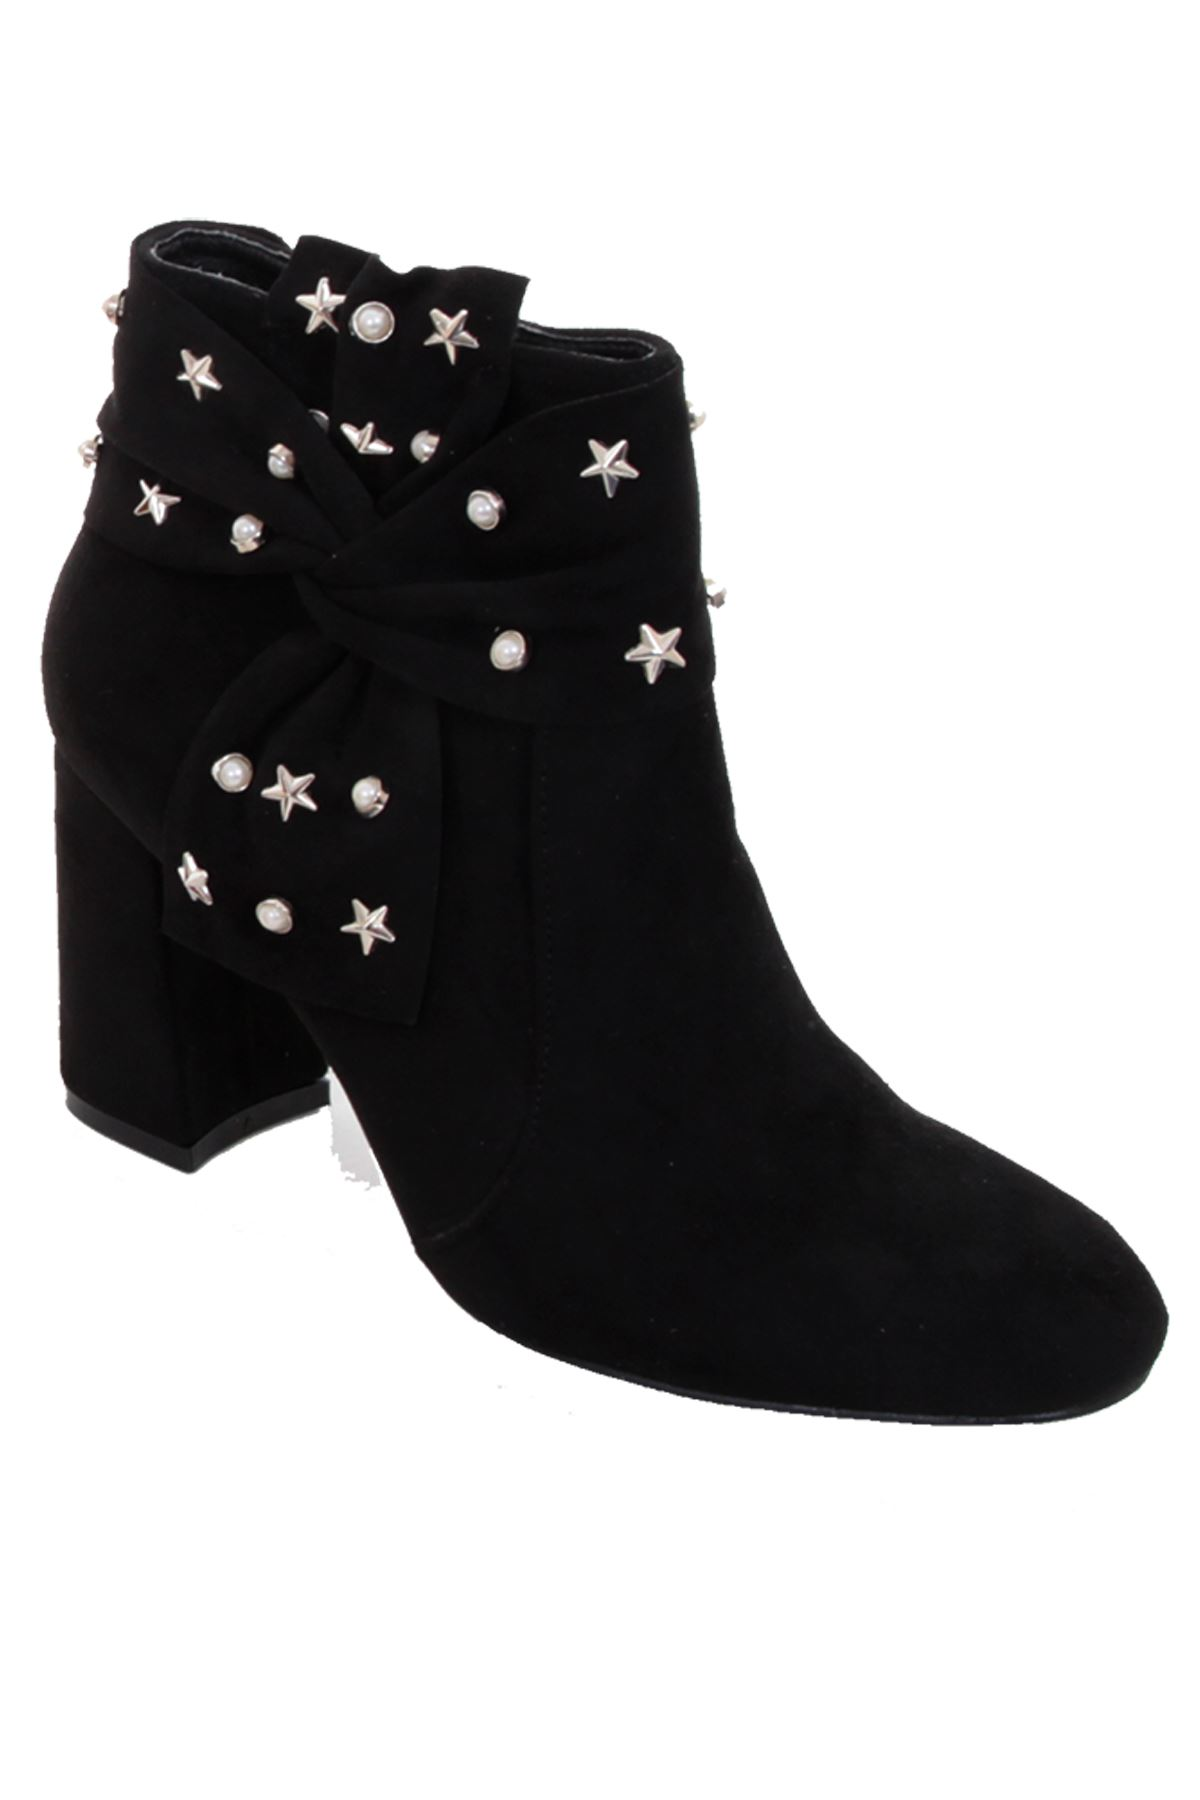 97be10a5b Ladies Chunky Block Heel Faux Suede Star Pearl Studded Zipper Ankle Boots